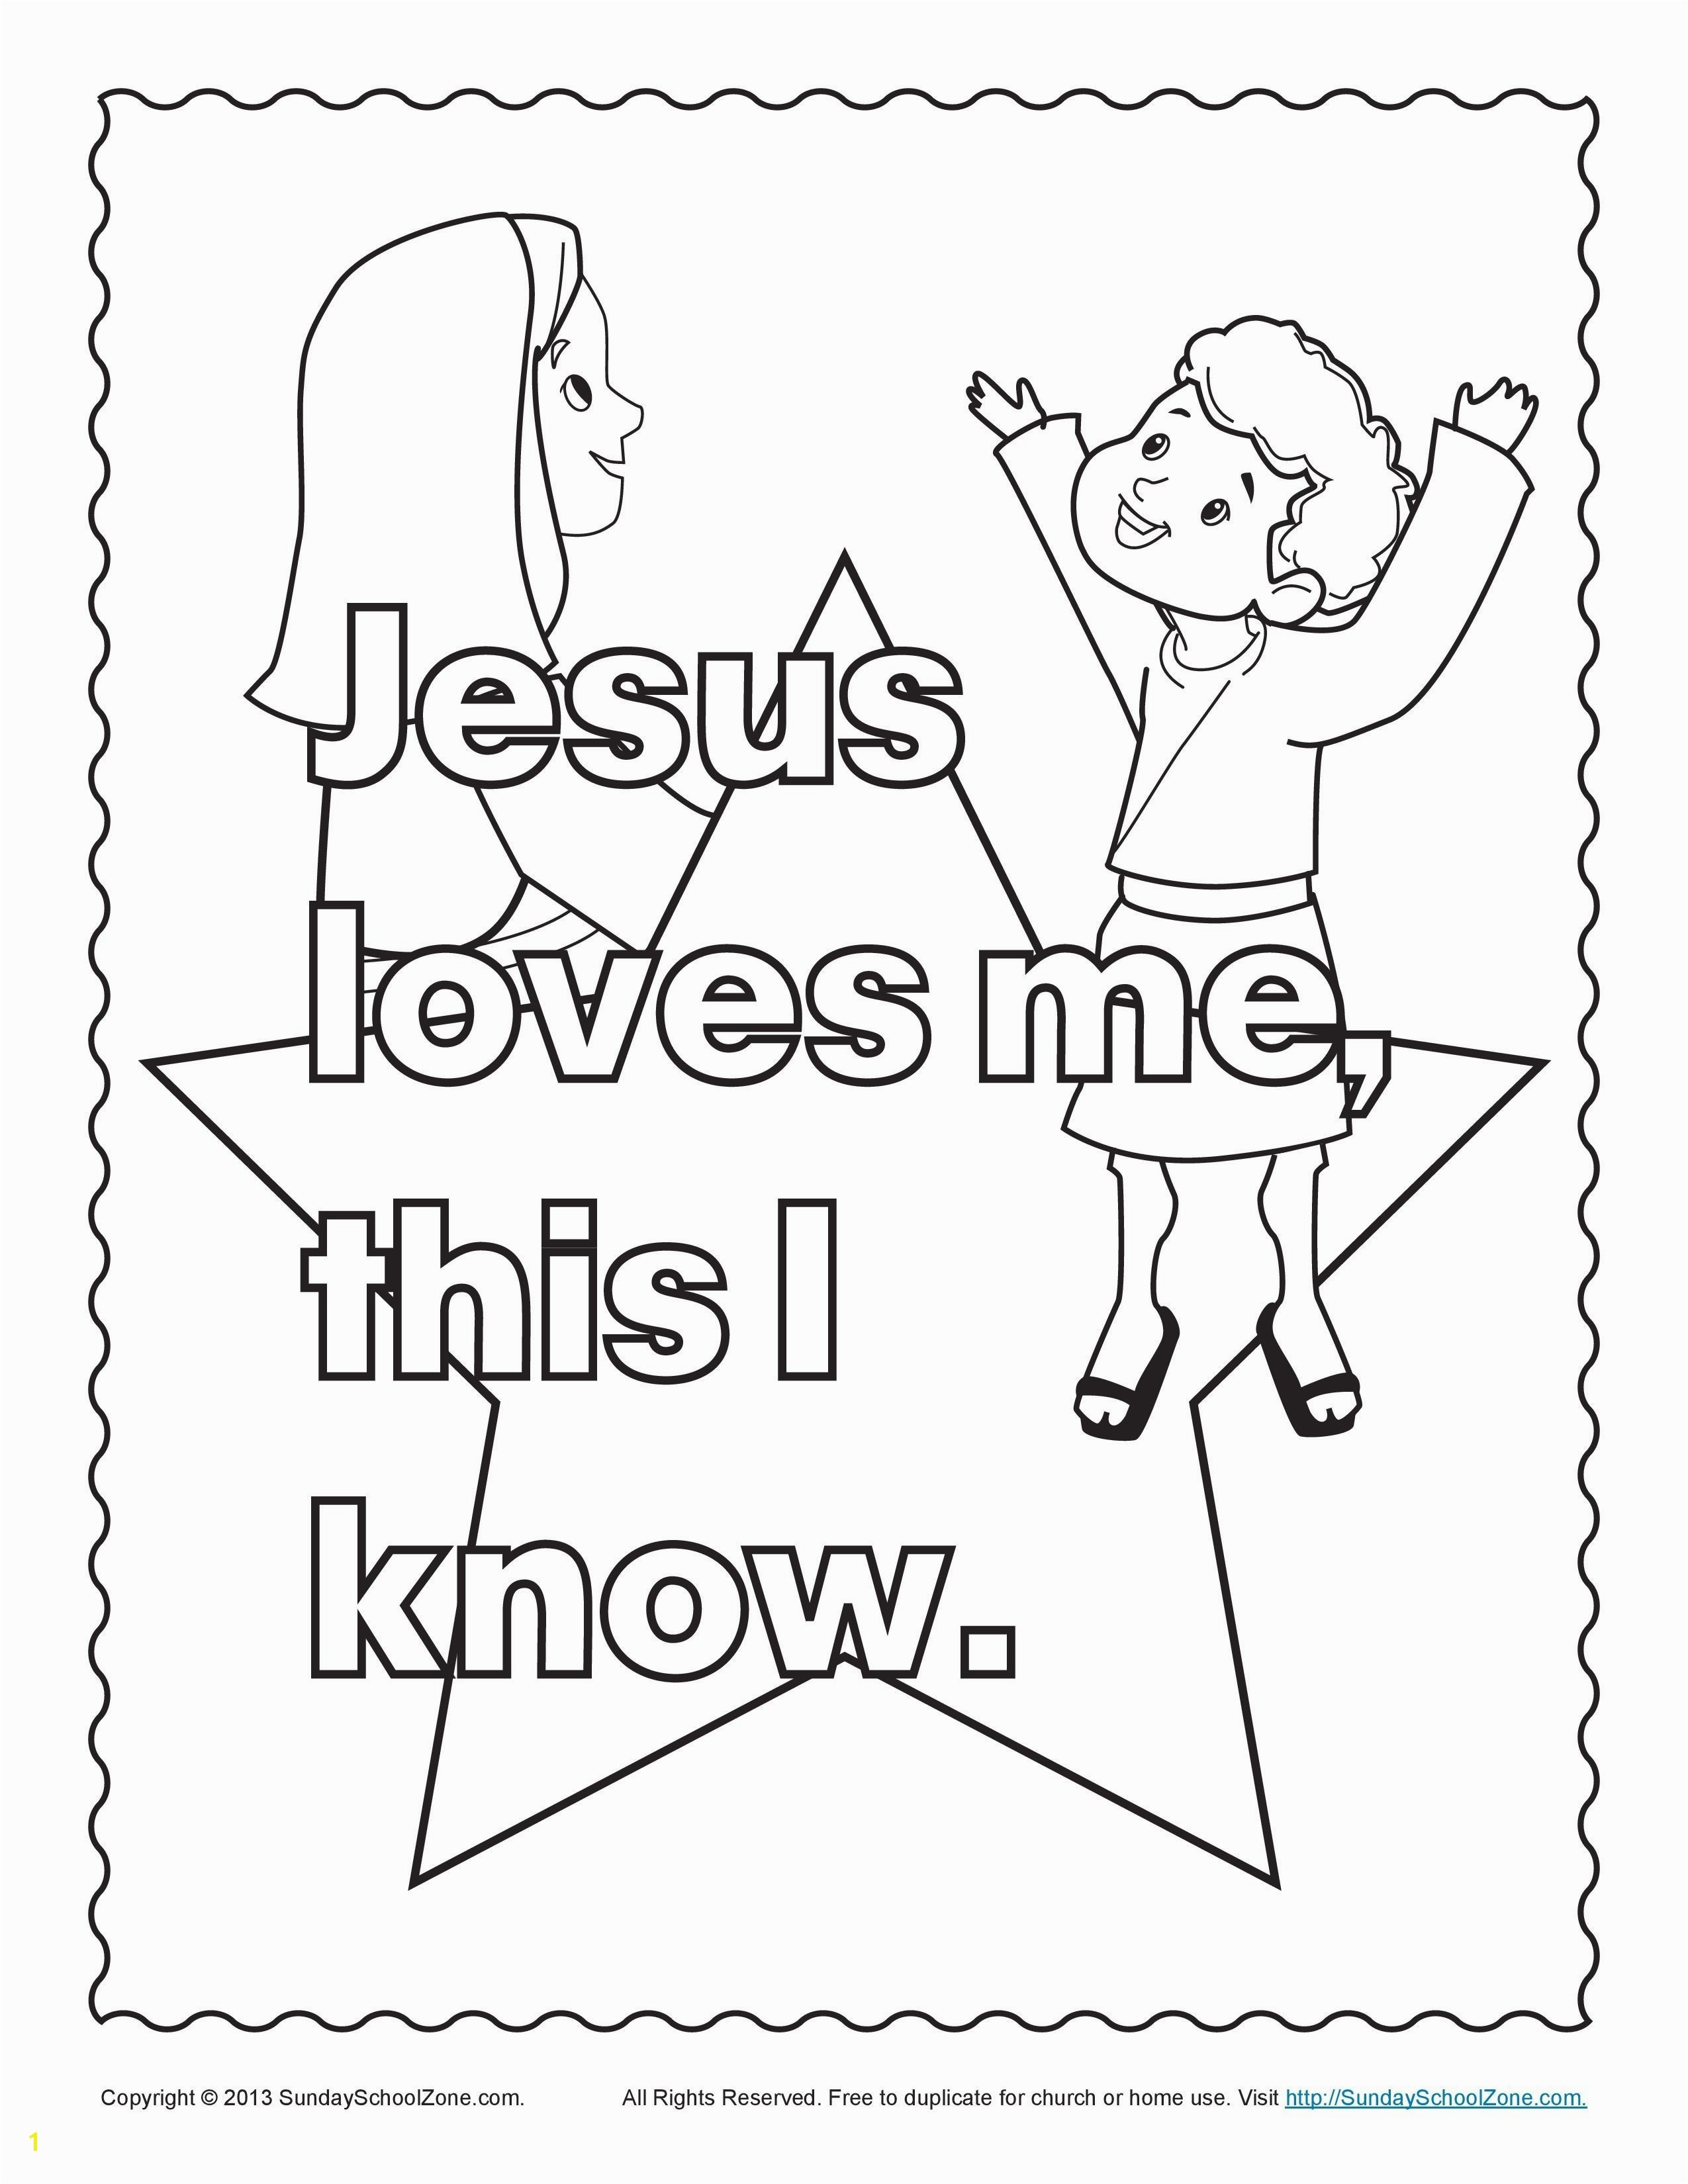 Free Printable Jesus Coloring Pages Save Imagination Free Printable Bible Coloring Pages for Preschoolers